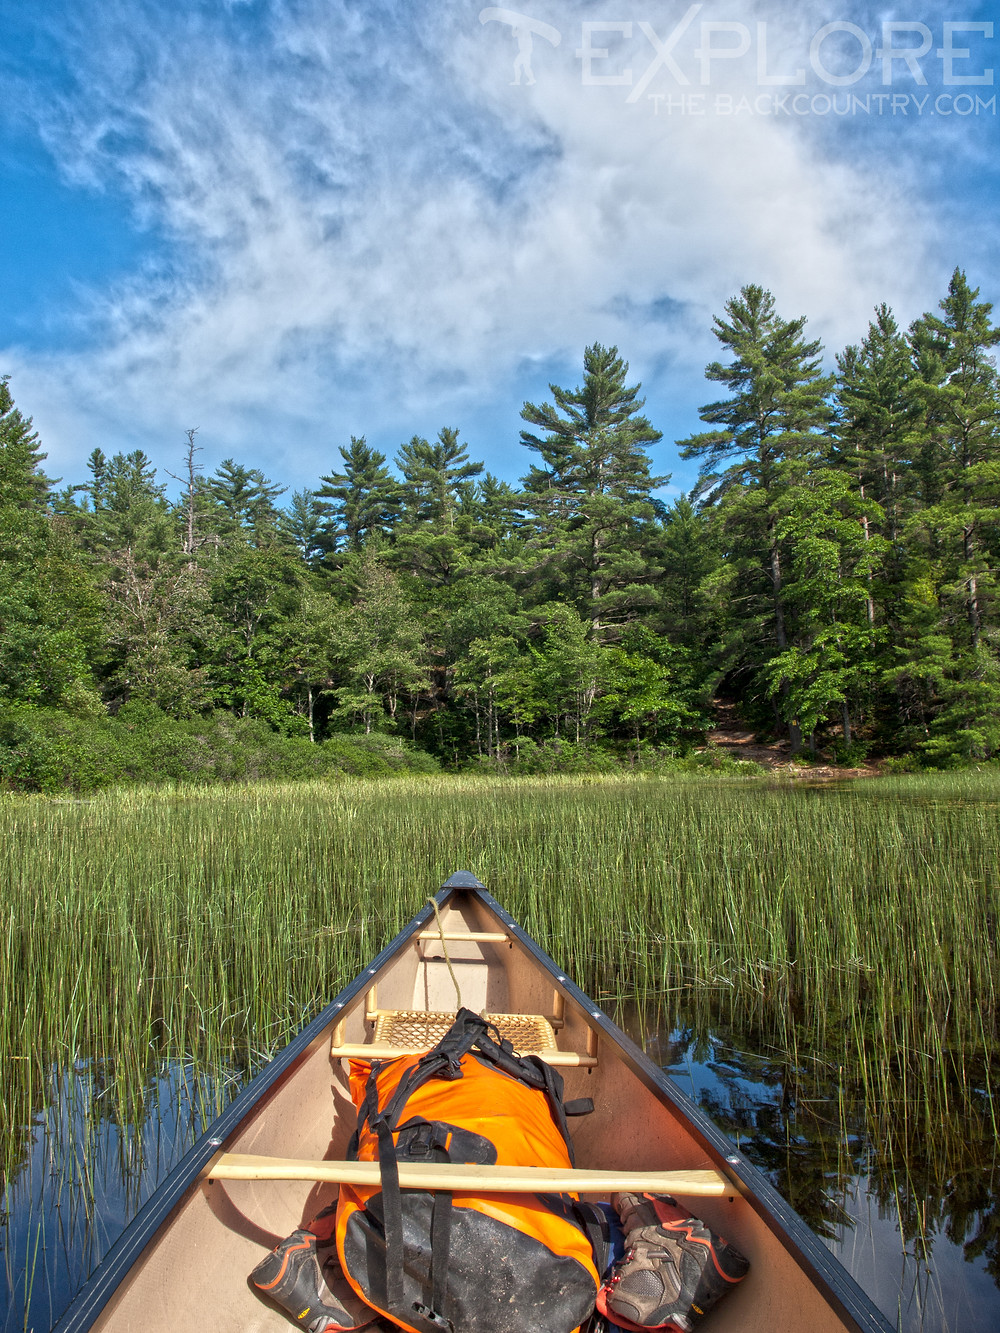 Searching for the Portage: Kawartha Highlands Signature Site